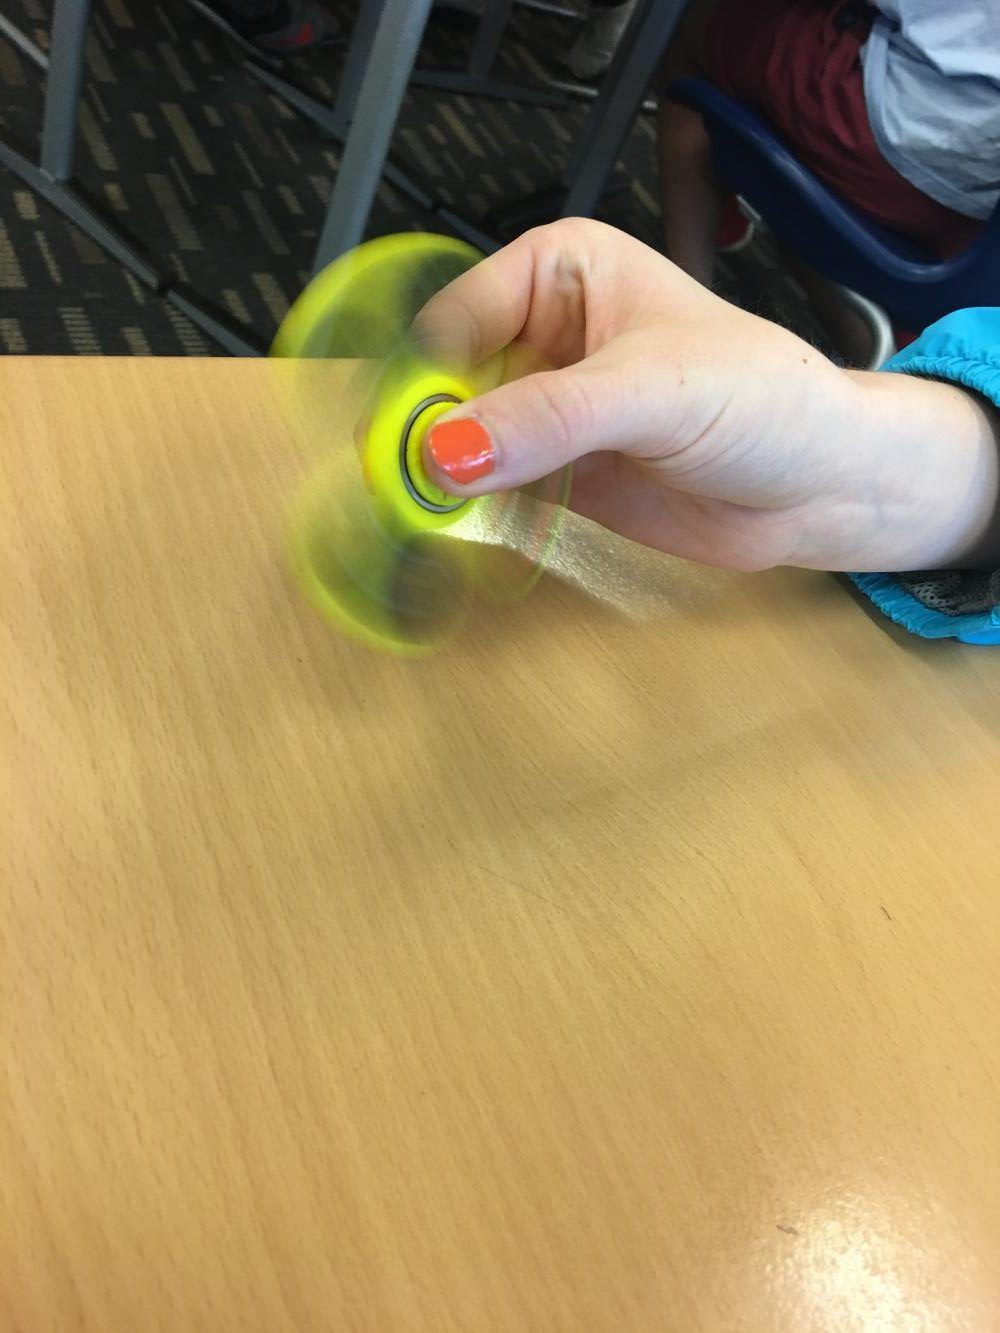 Student spins her fidget spinner to increase their classroom production